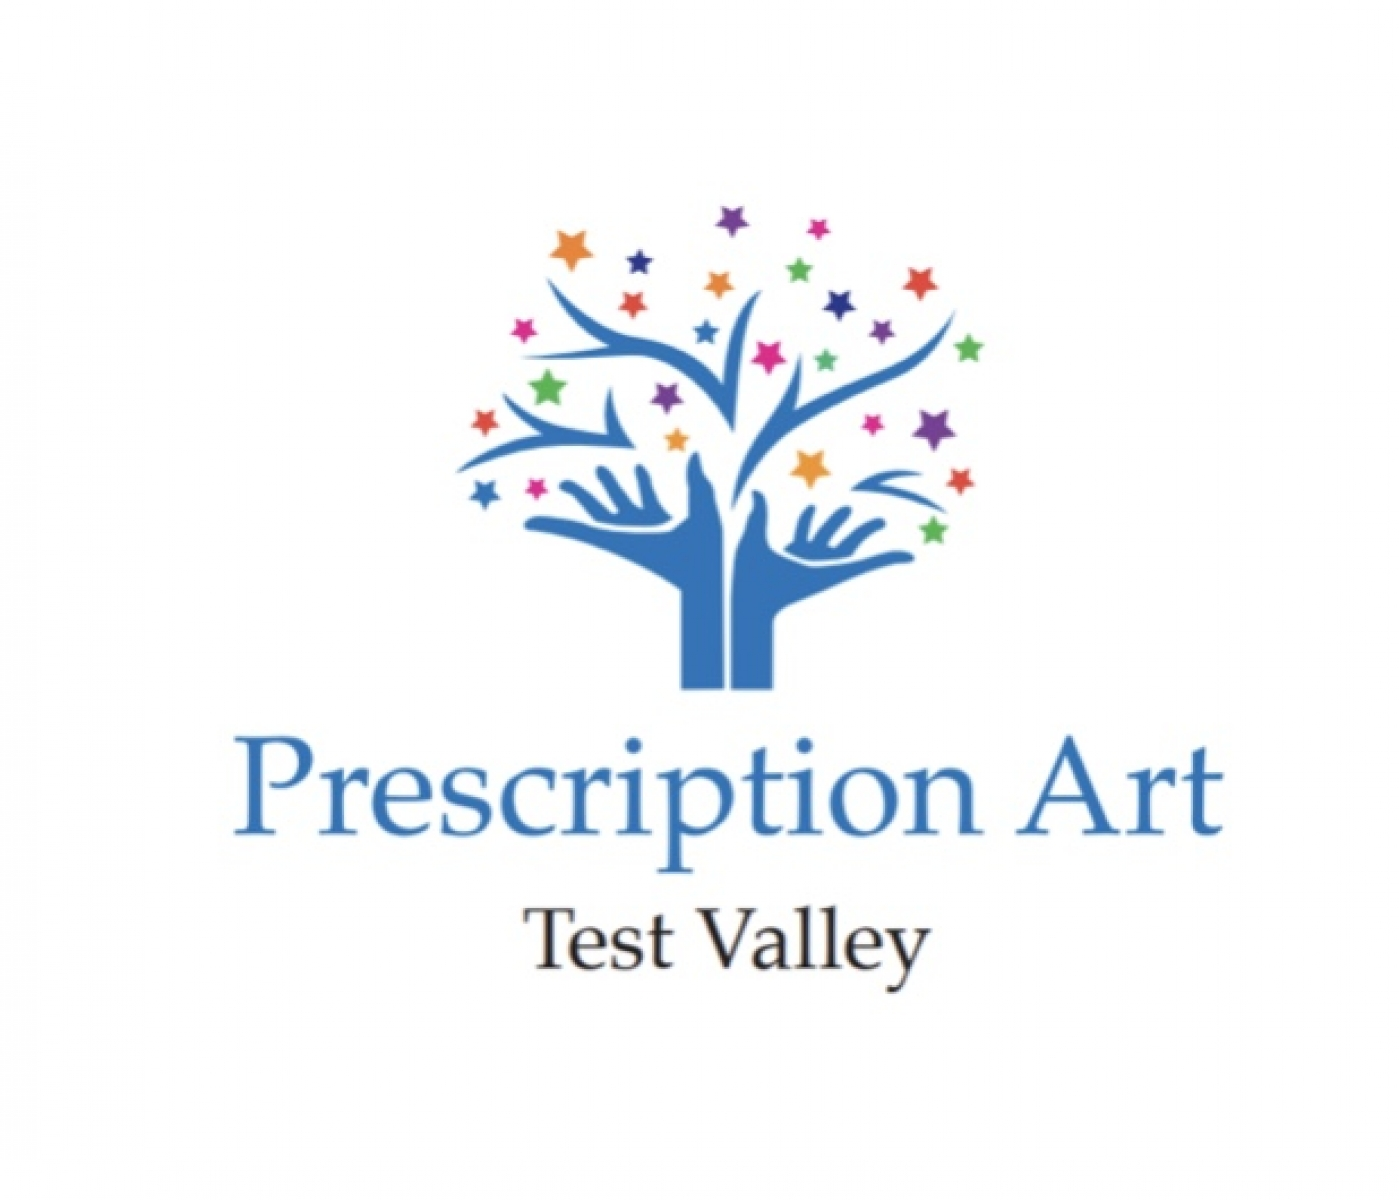 Prescription Art Test Valley eCards